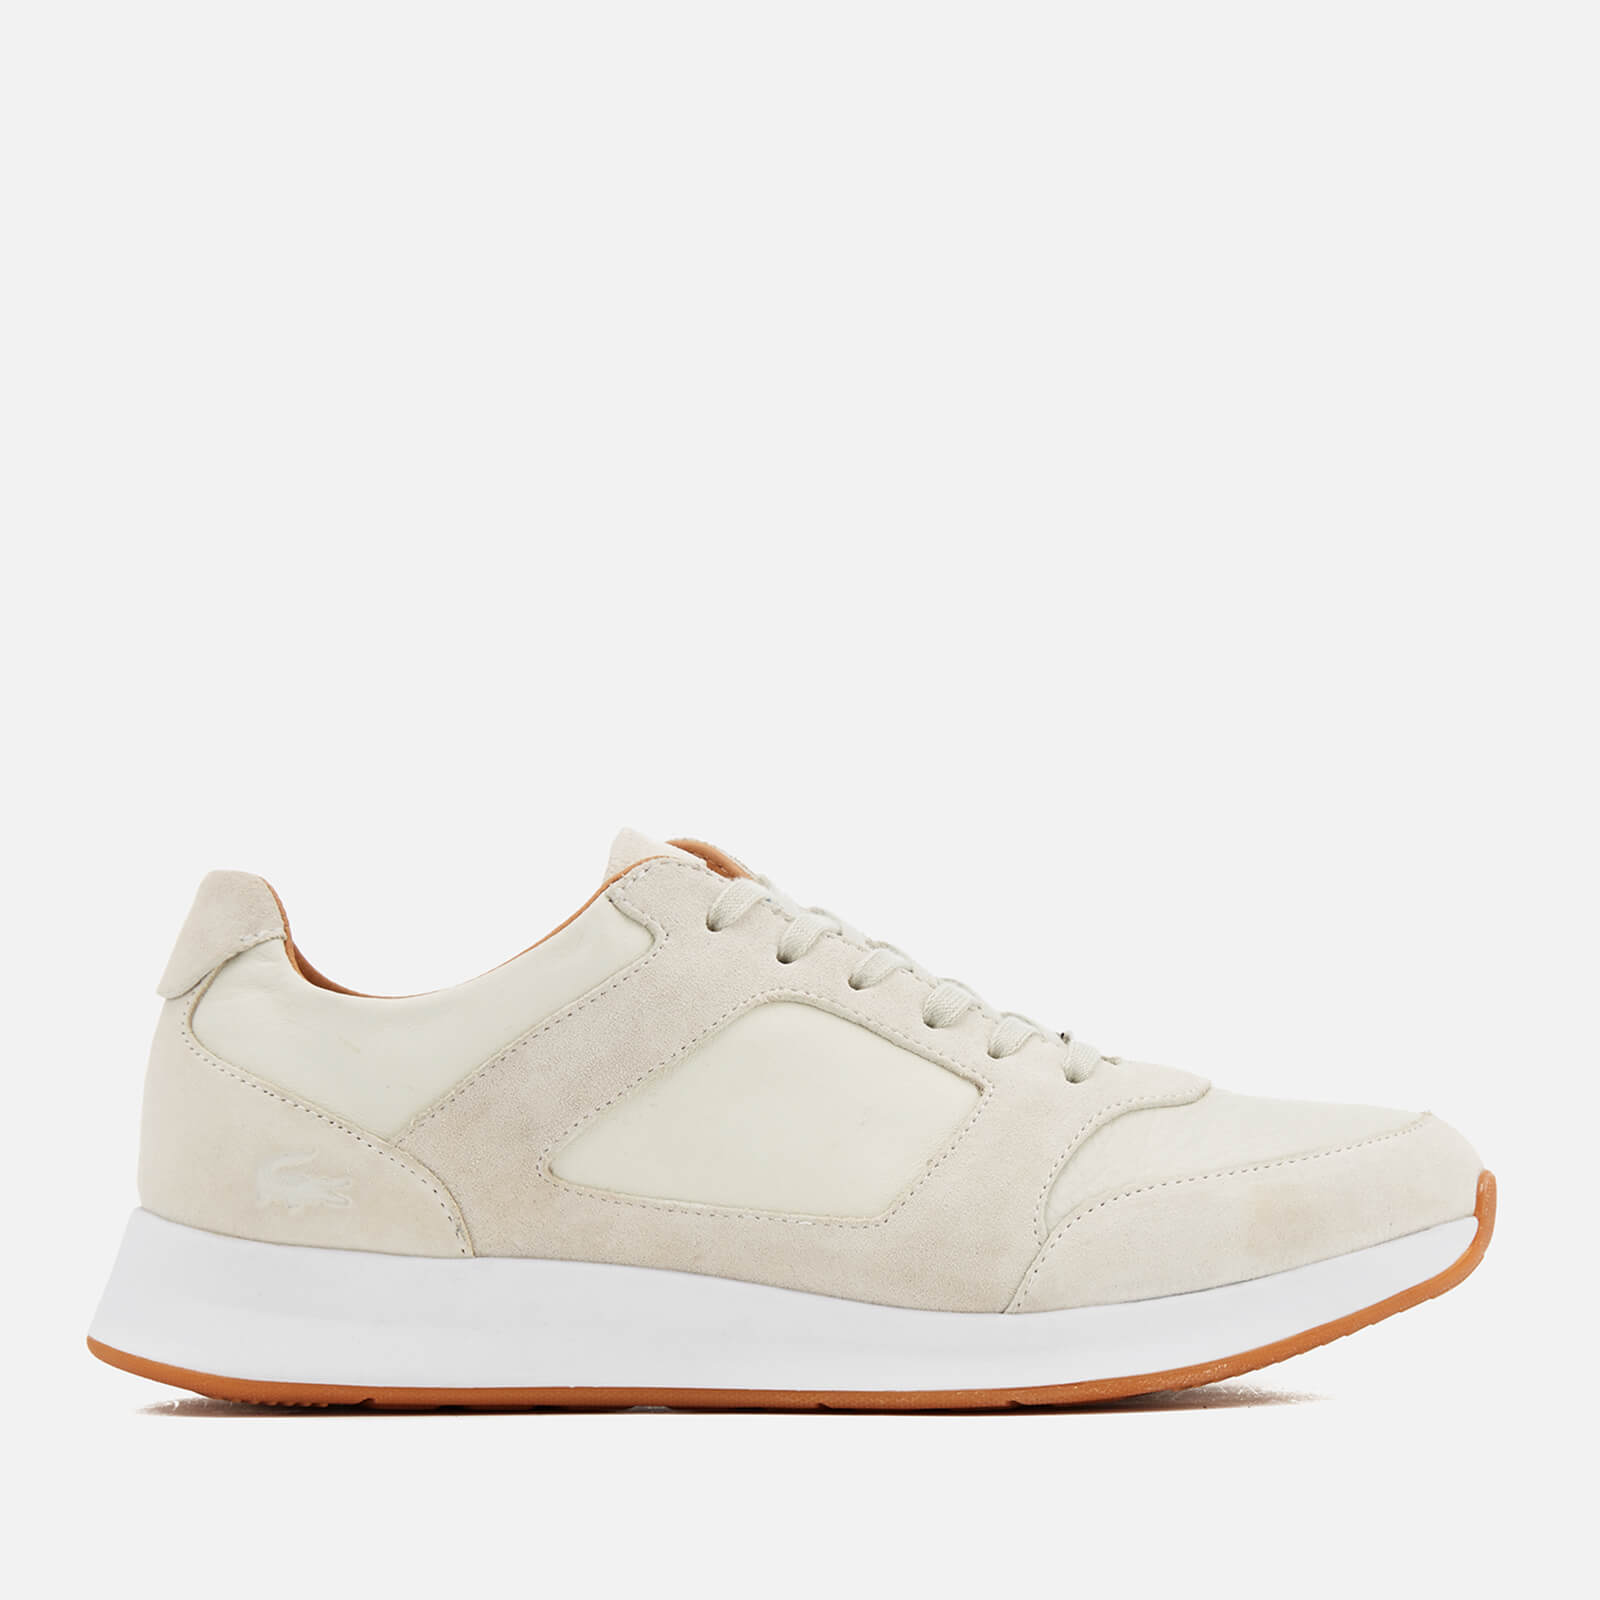 8e6cfd4e5 Lacoste Men s Joggeur 116 Trainers - Off White - Free UK Delivery over £50